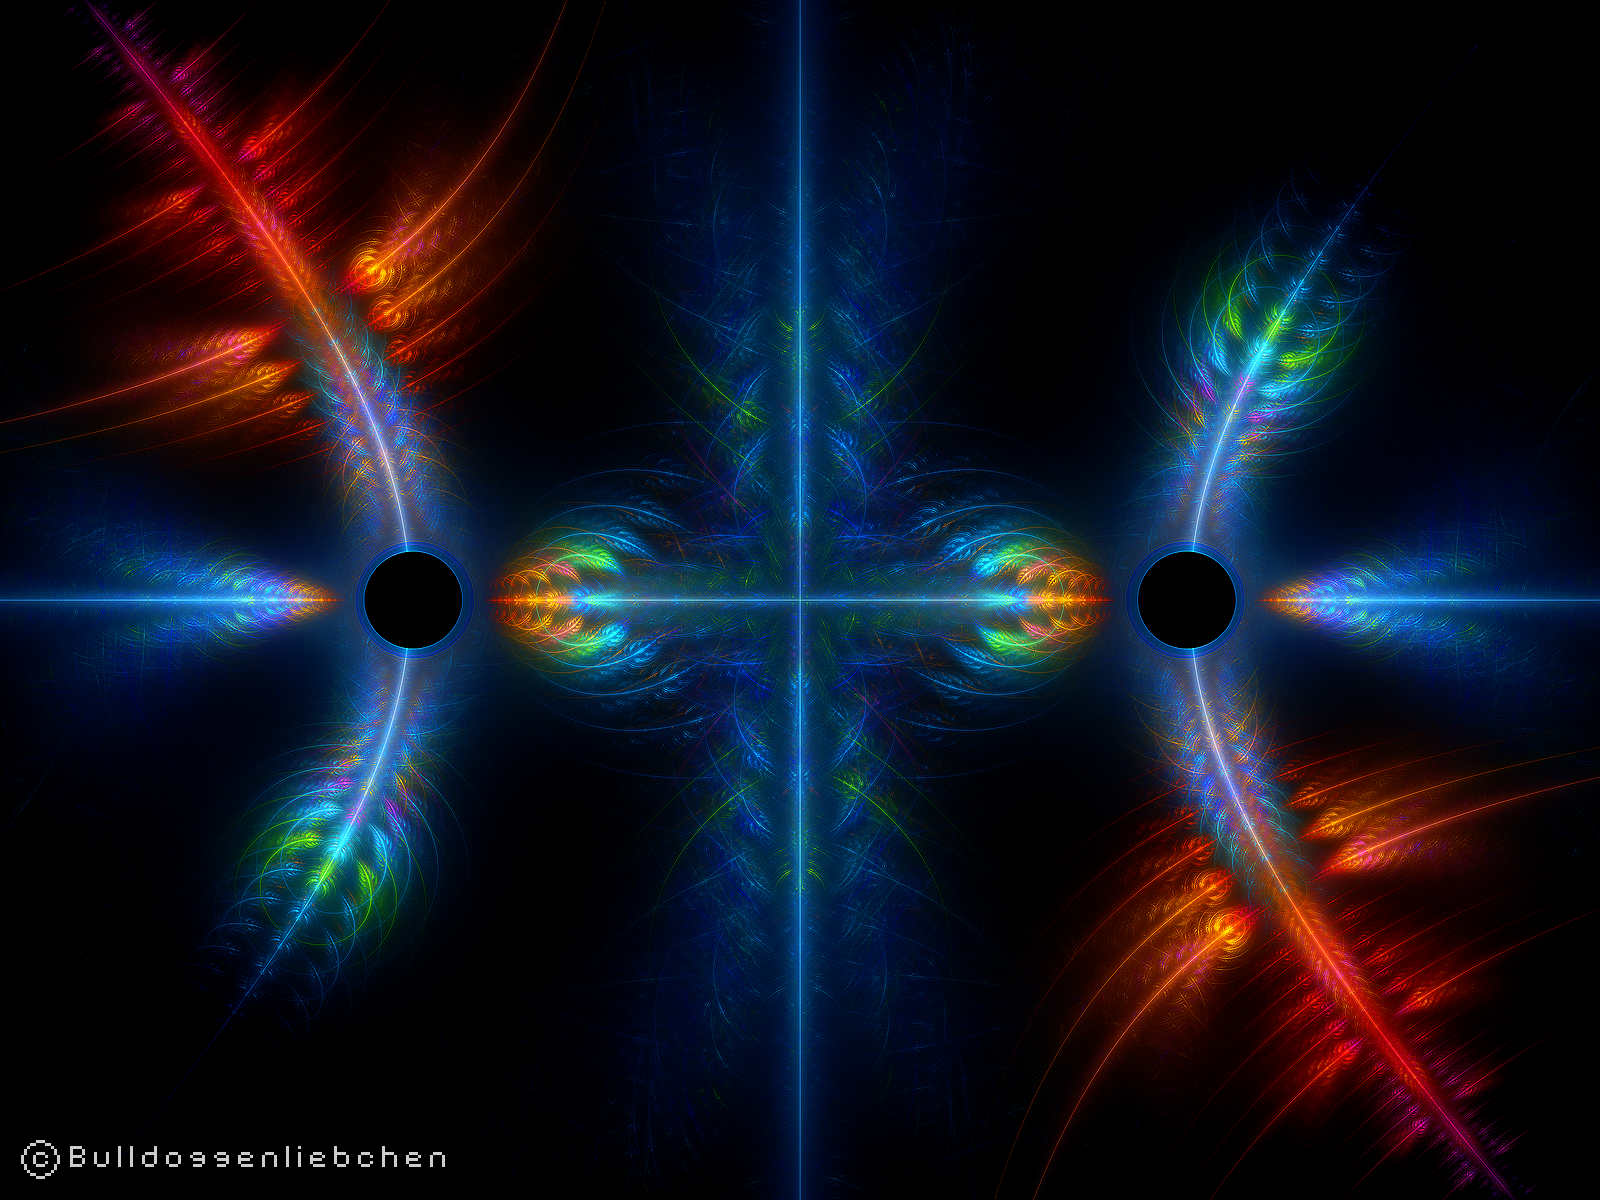 Spectral Lines Produced Spectral Lines By Bulldoggenliebchen Dyr